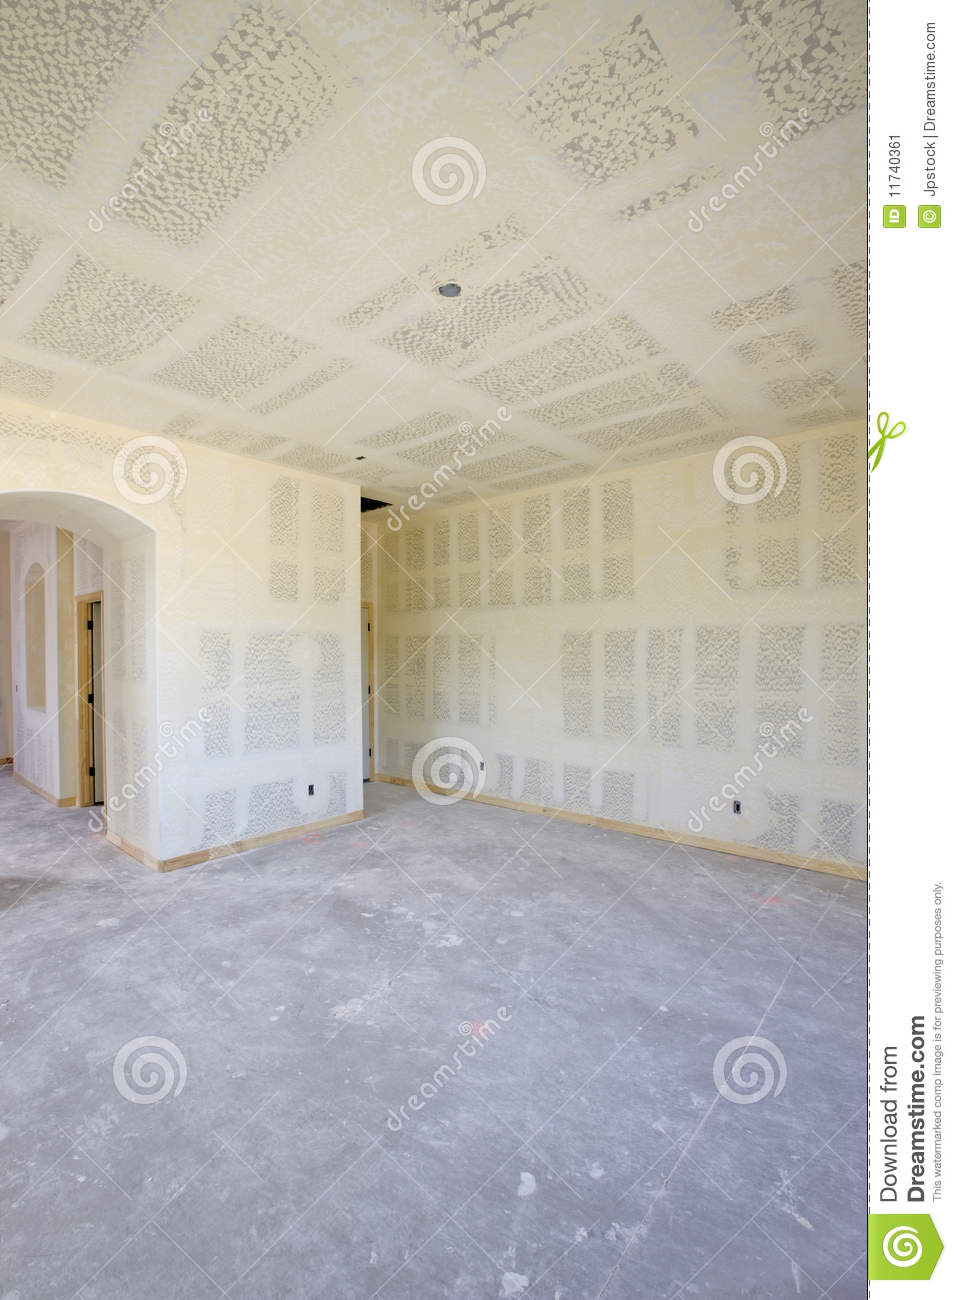 Drywall Time Cards : New construction of drywall interior stock image